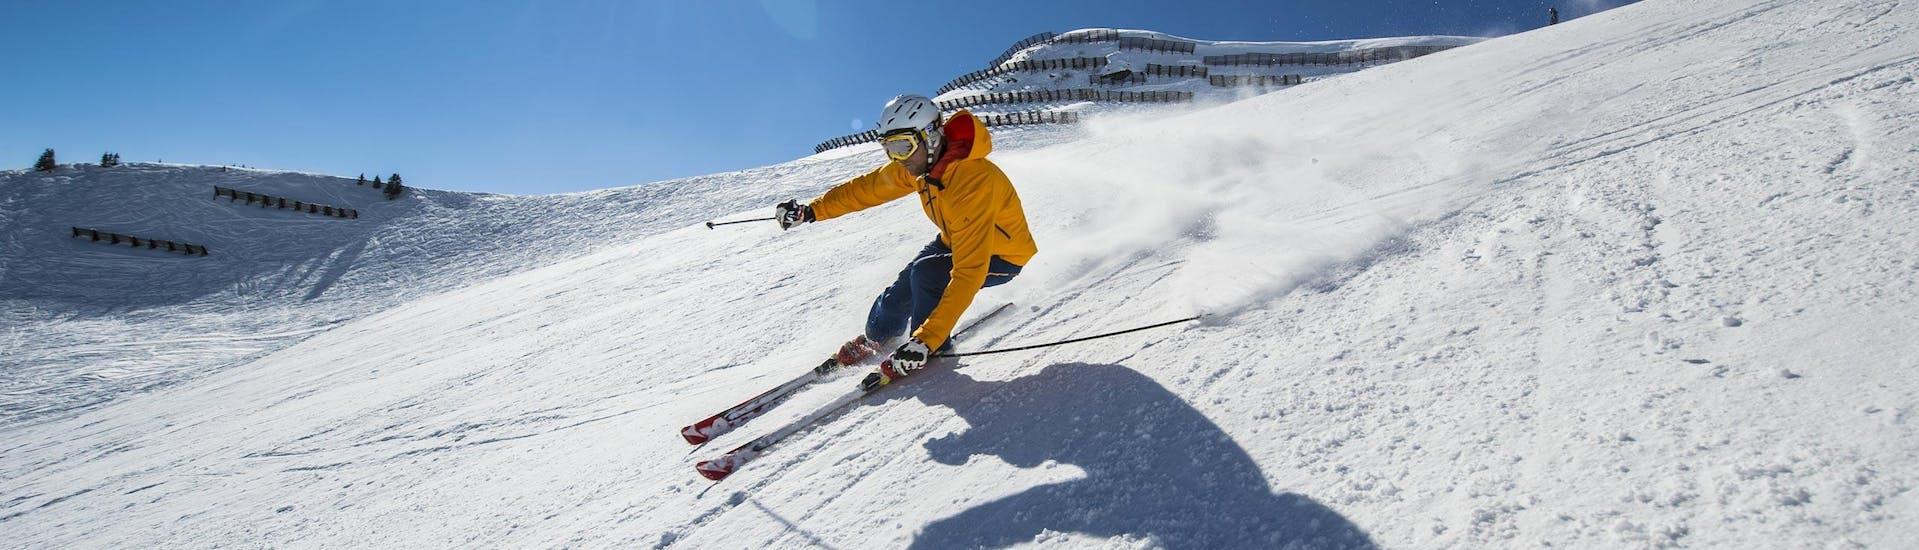 Adults Ski Lessons for All Levels: A skier is skiing down a sunny ski slope while participating in an activity offered by Swiss Ski School Klosters.